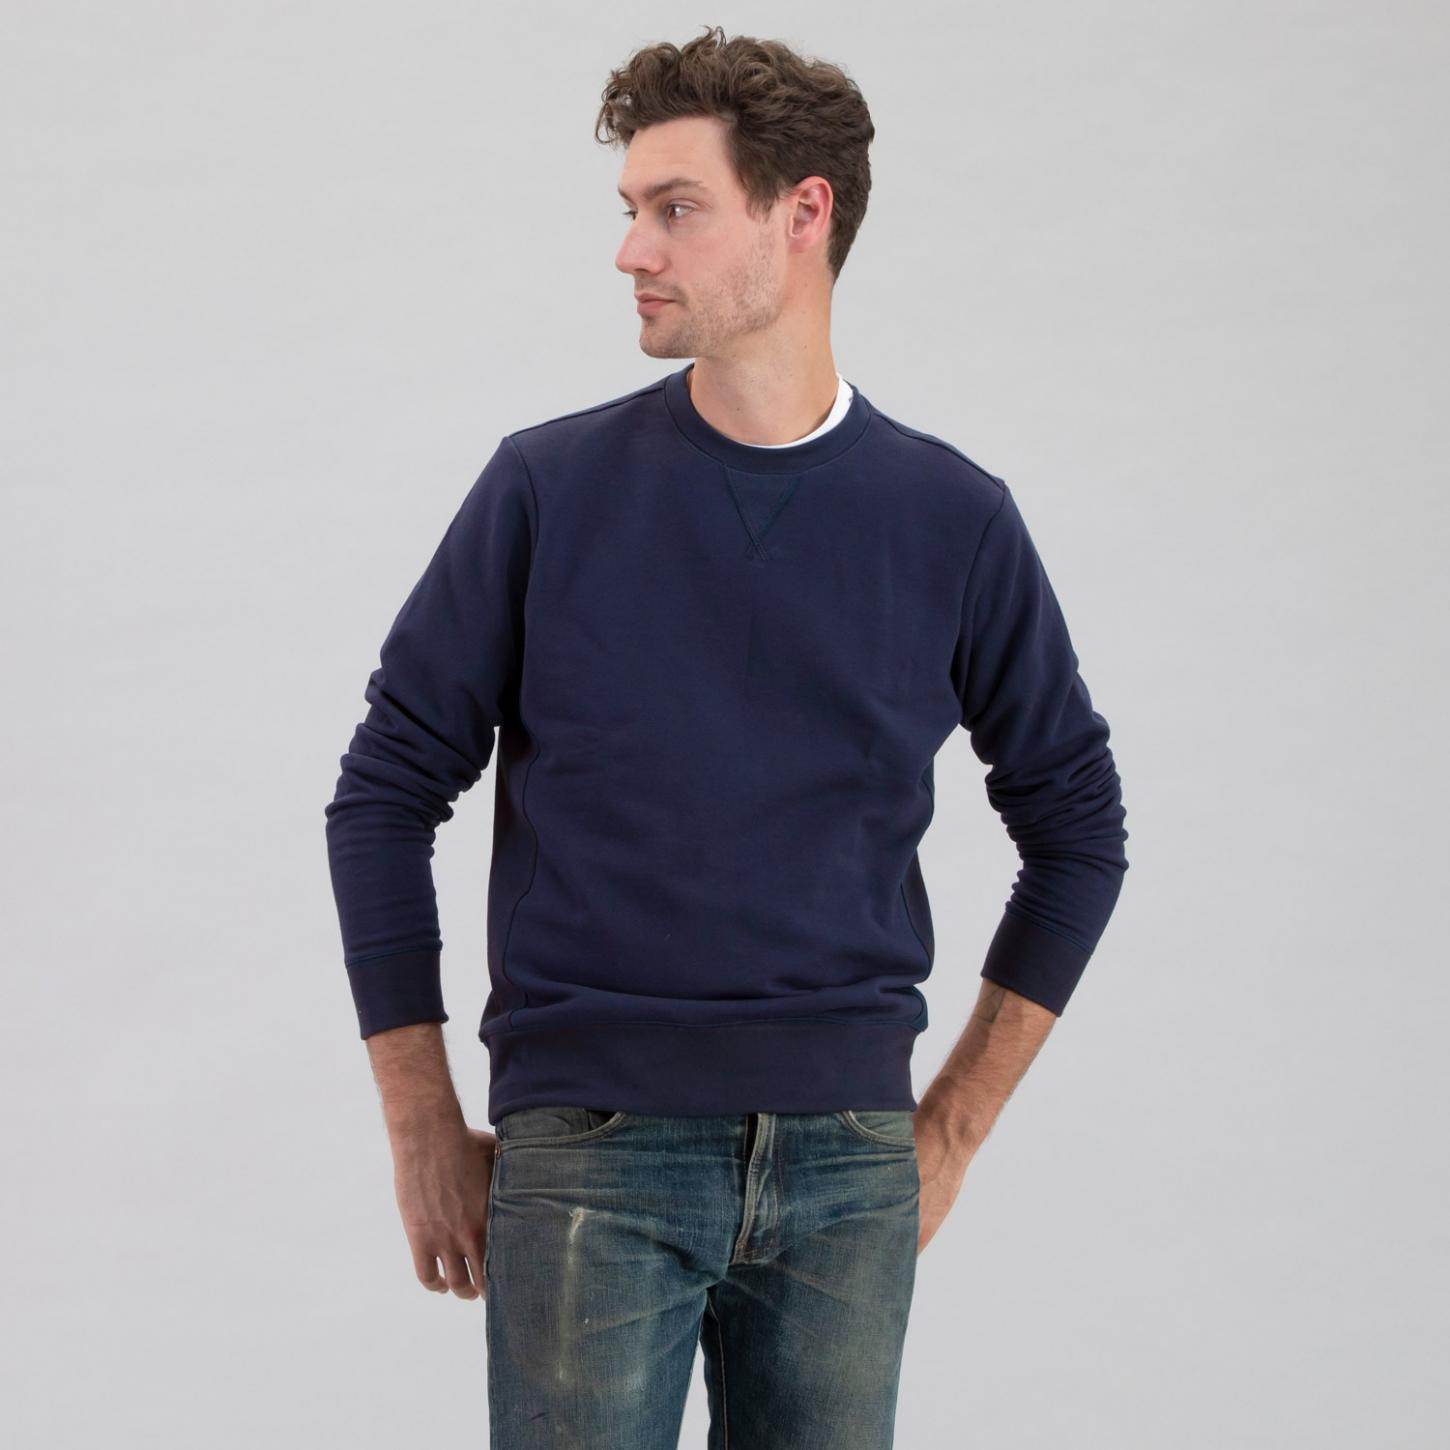 Track & Field Sweatshirt Navy